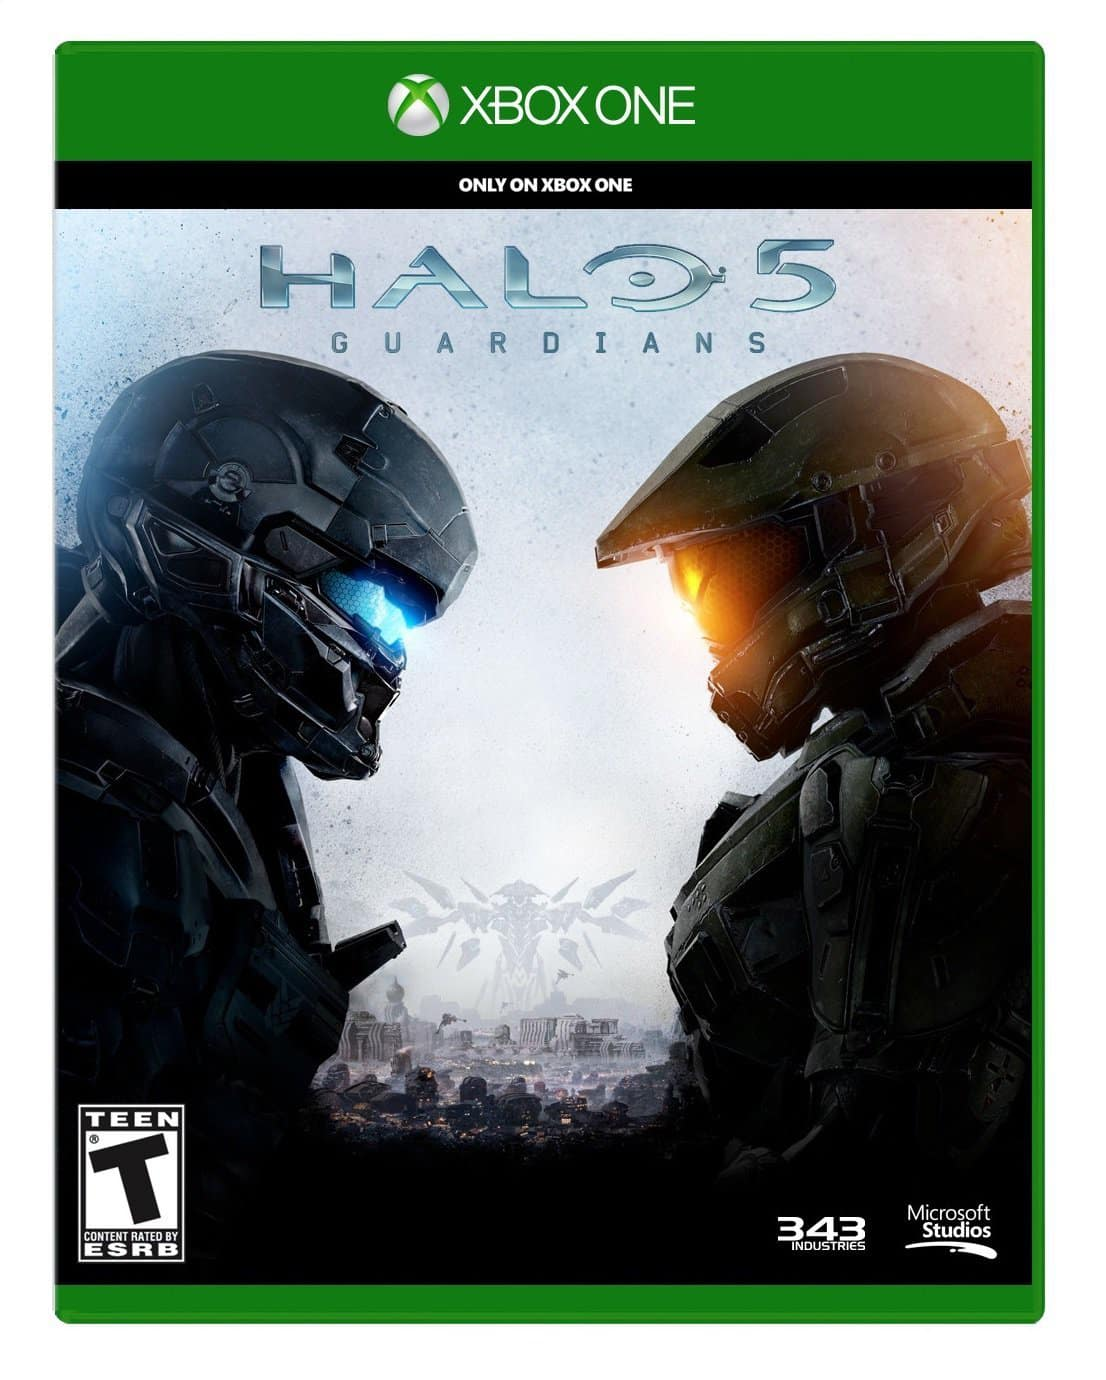 Halo 5: Guardians (Pre-Order) $49.99 at Amazon (Prime Only)